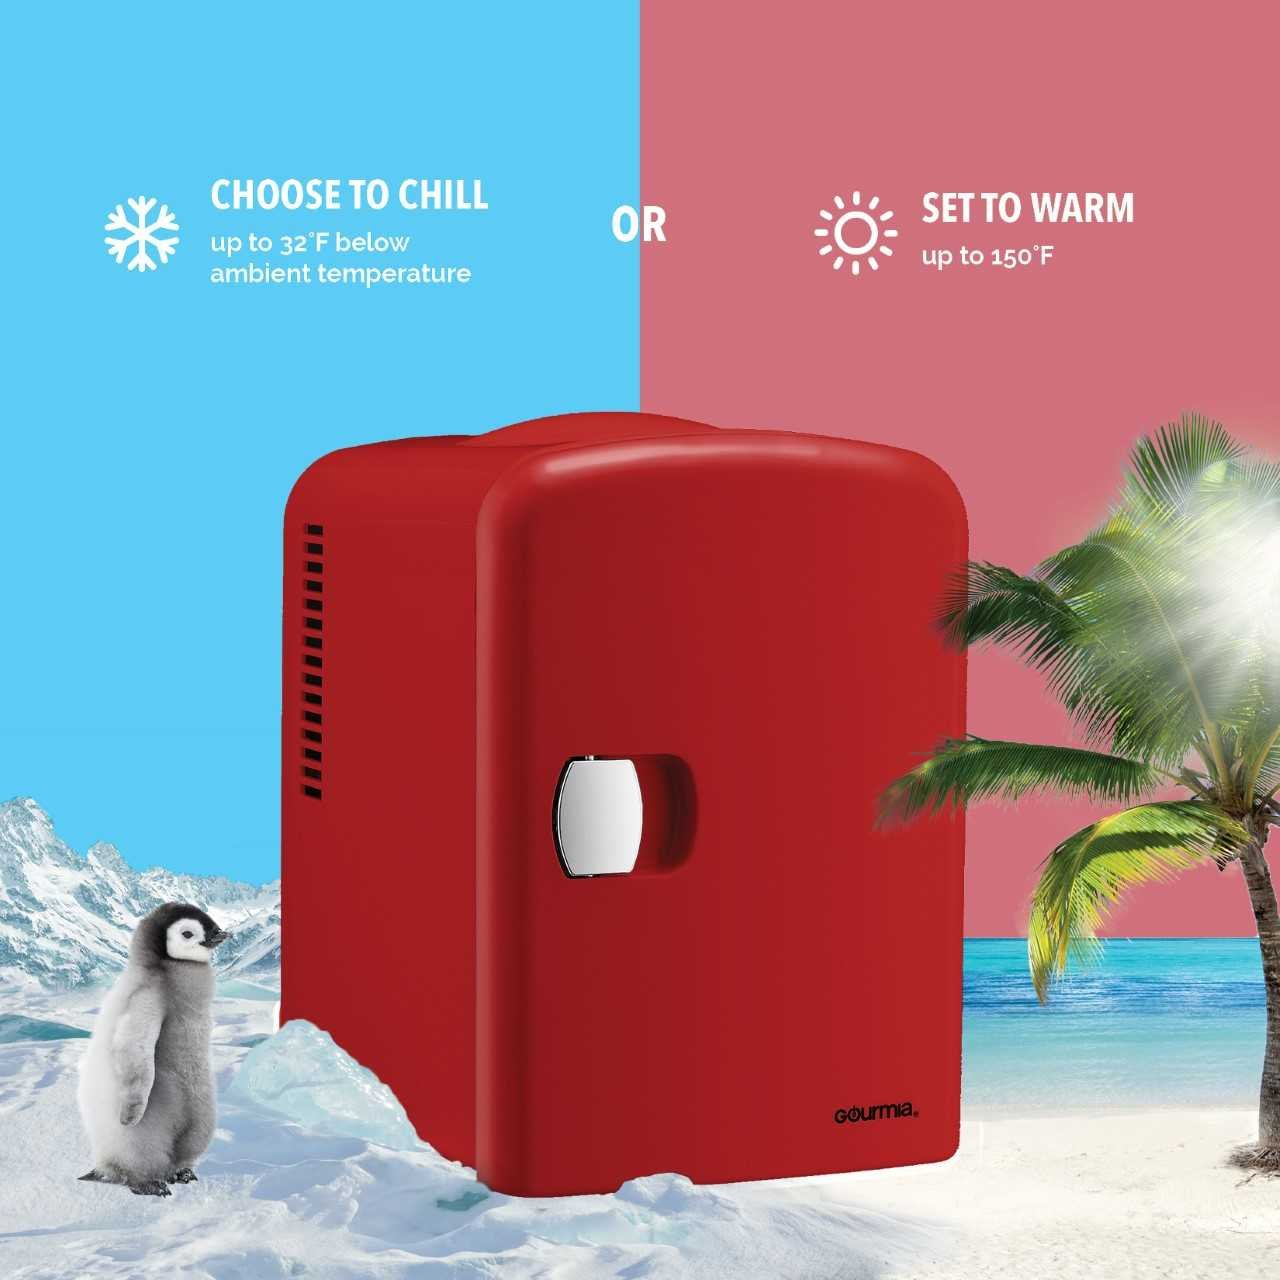 Gourmia GMF600 Thermoelectric Mini Fridge Cooler and Warmer - 4 Liter/ 6 Can - For Home,Office, Car, Dorm or Boat - Compact & Portable - AC & DC Power Cords - Red by Gourmia (Image #3)